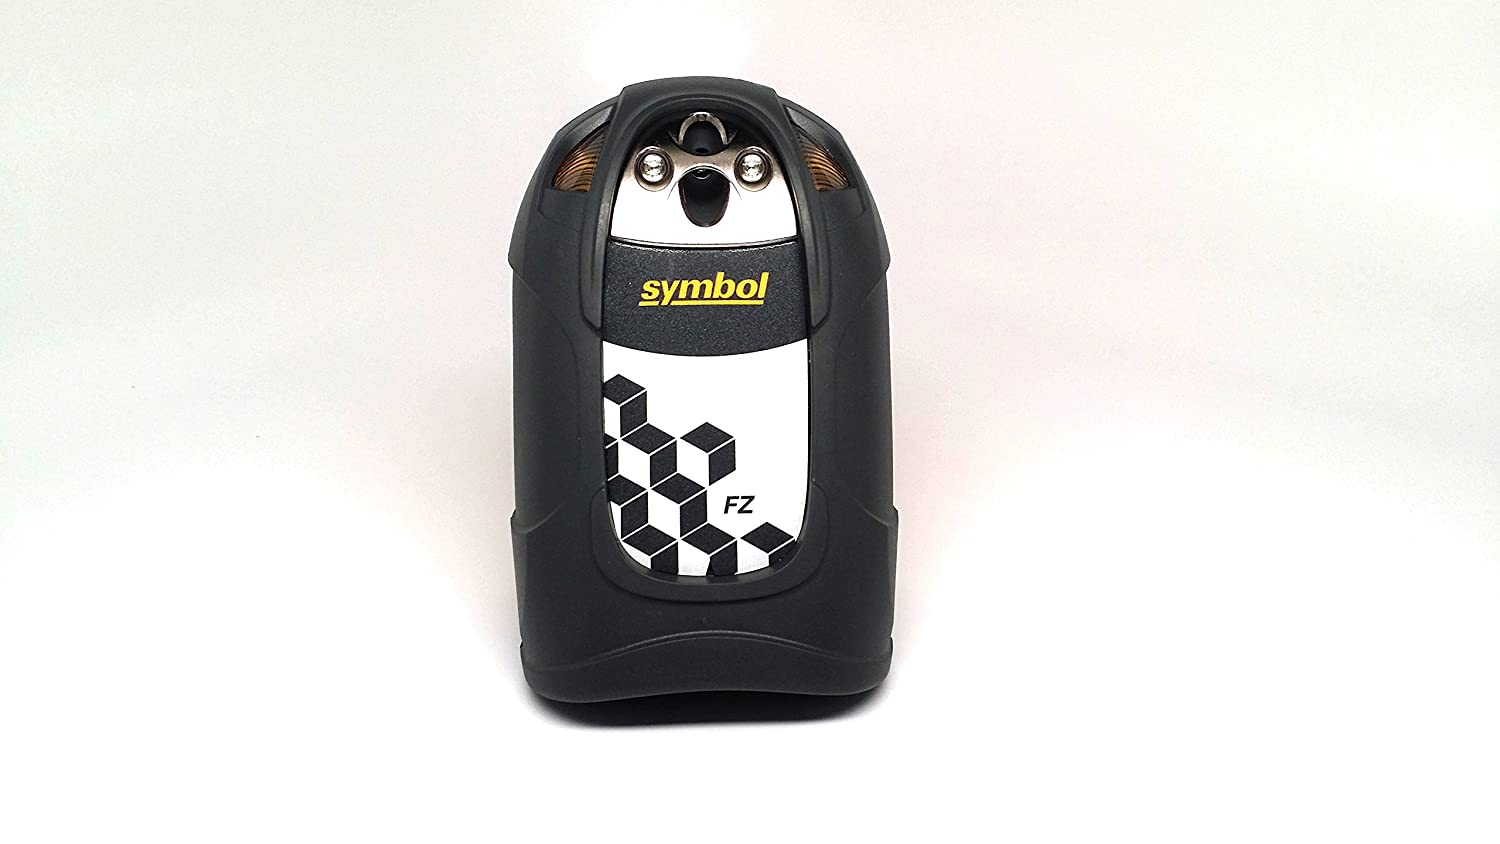 Amazon zebramotorola symbol ls3408 fz rugged handheld amazon zebramotorola symbol ls3408 fz rugged handheld barcode scanner with usb cable electronics biocorpaavc